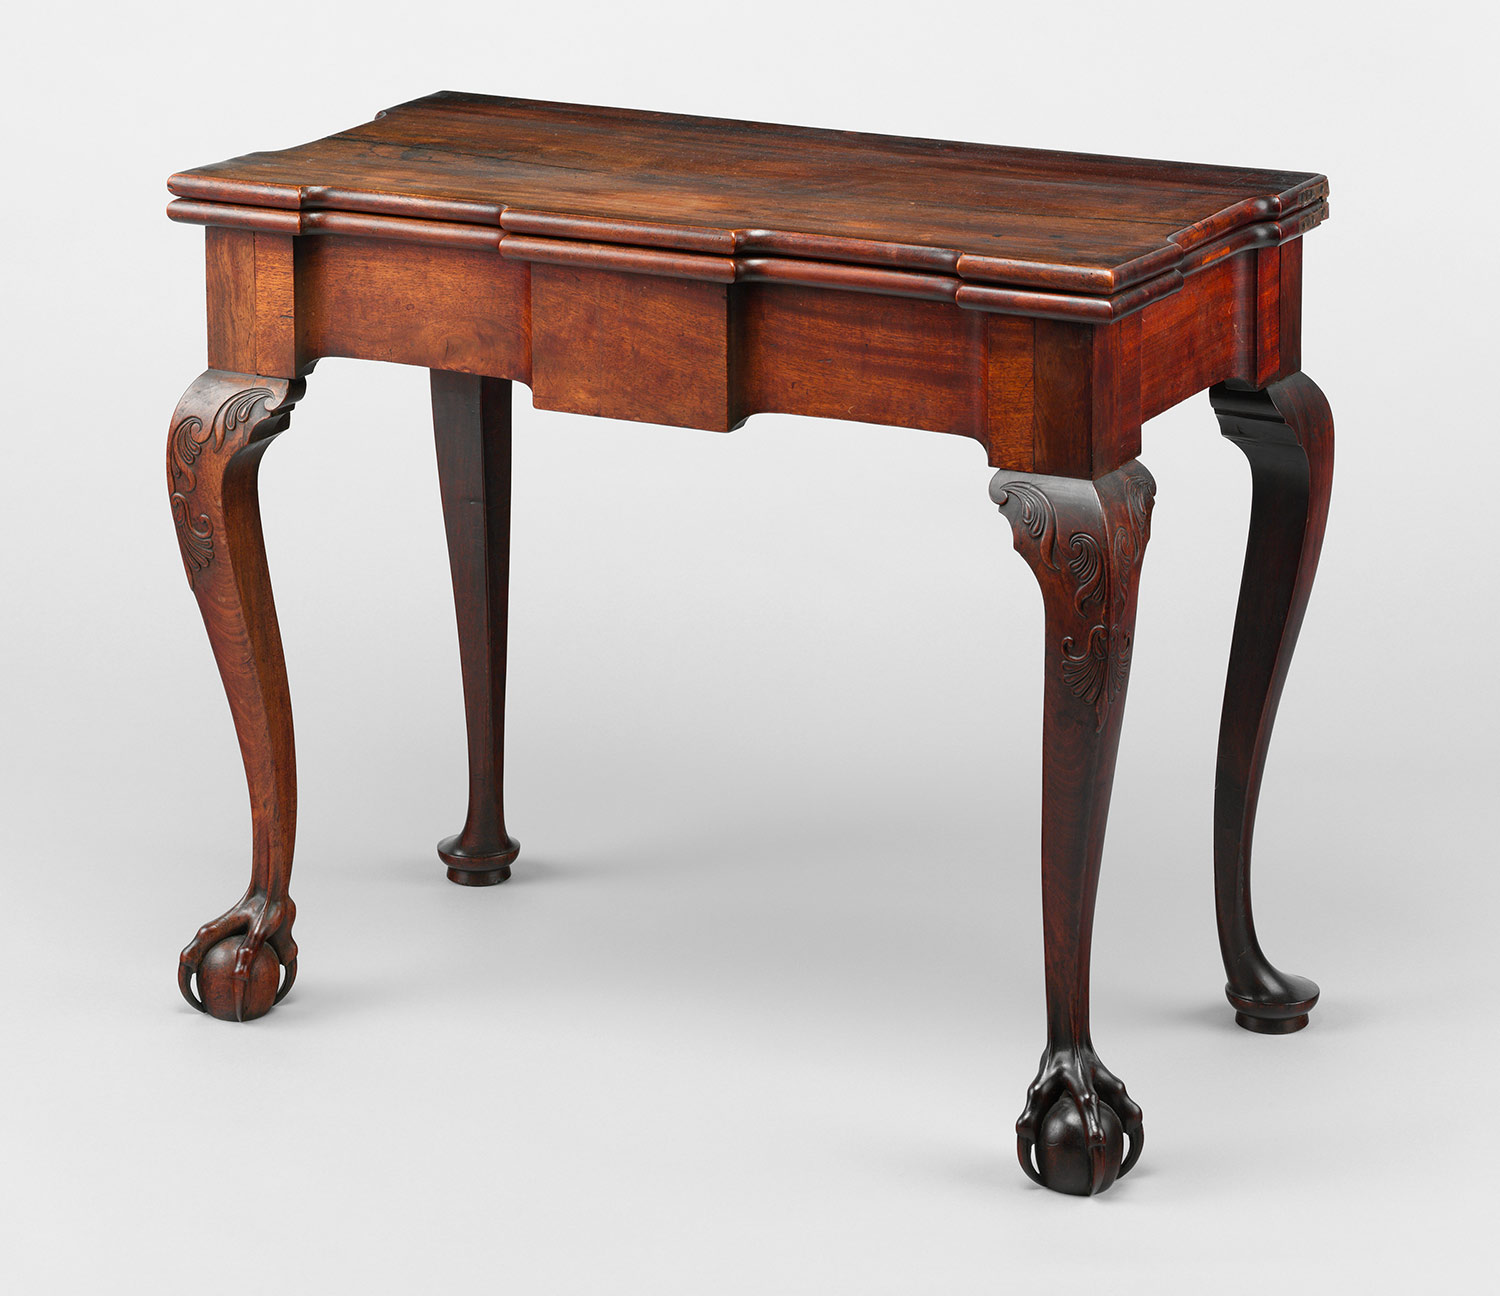 h2 67.114.1 - Antique American Furniture: A Frank Discourse